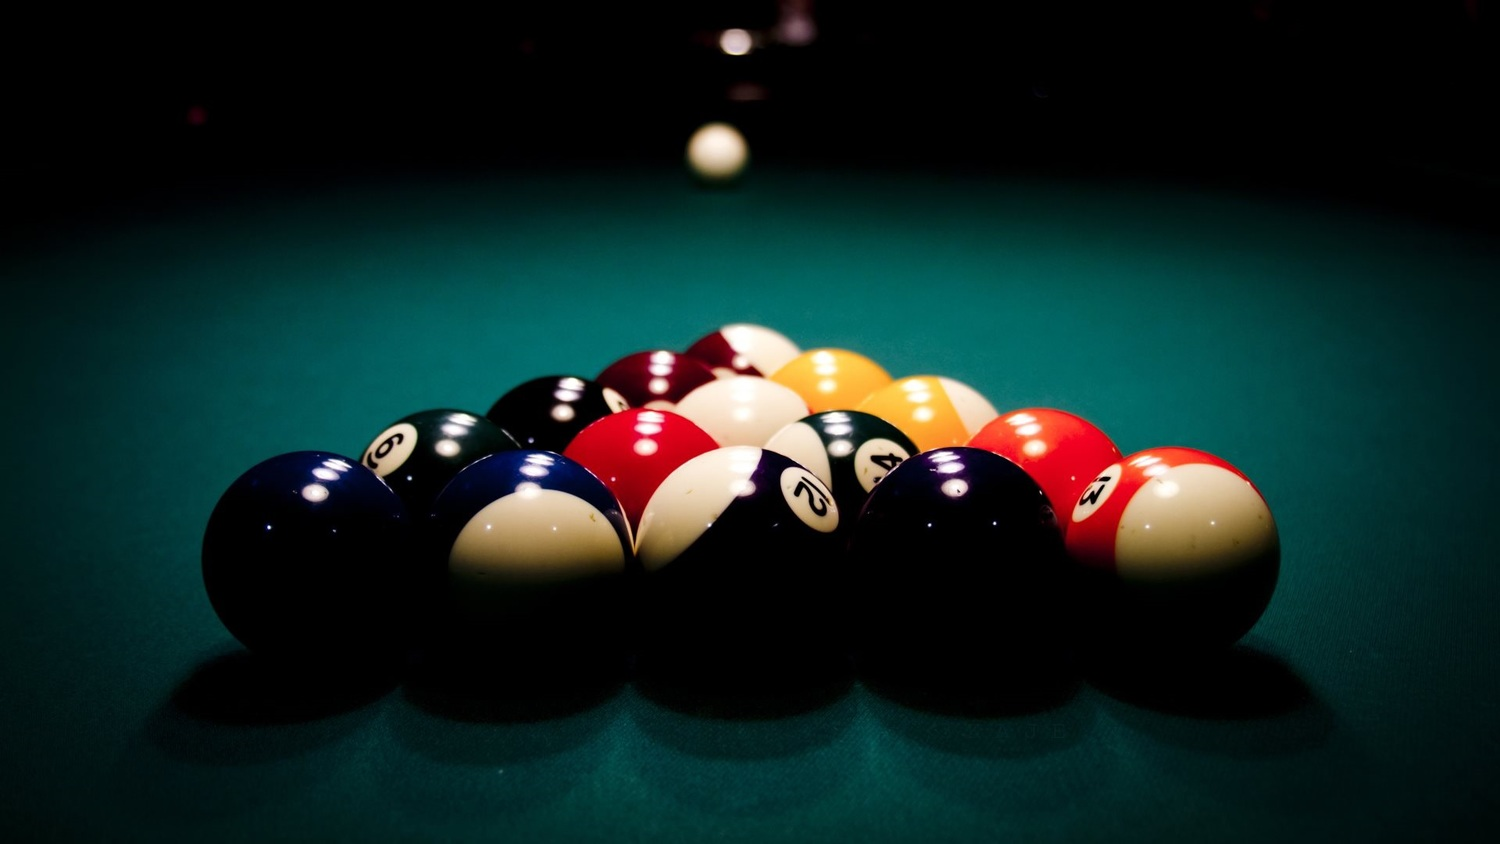 Is billiards a sport or a hobby?